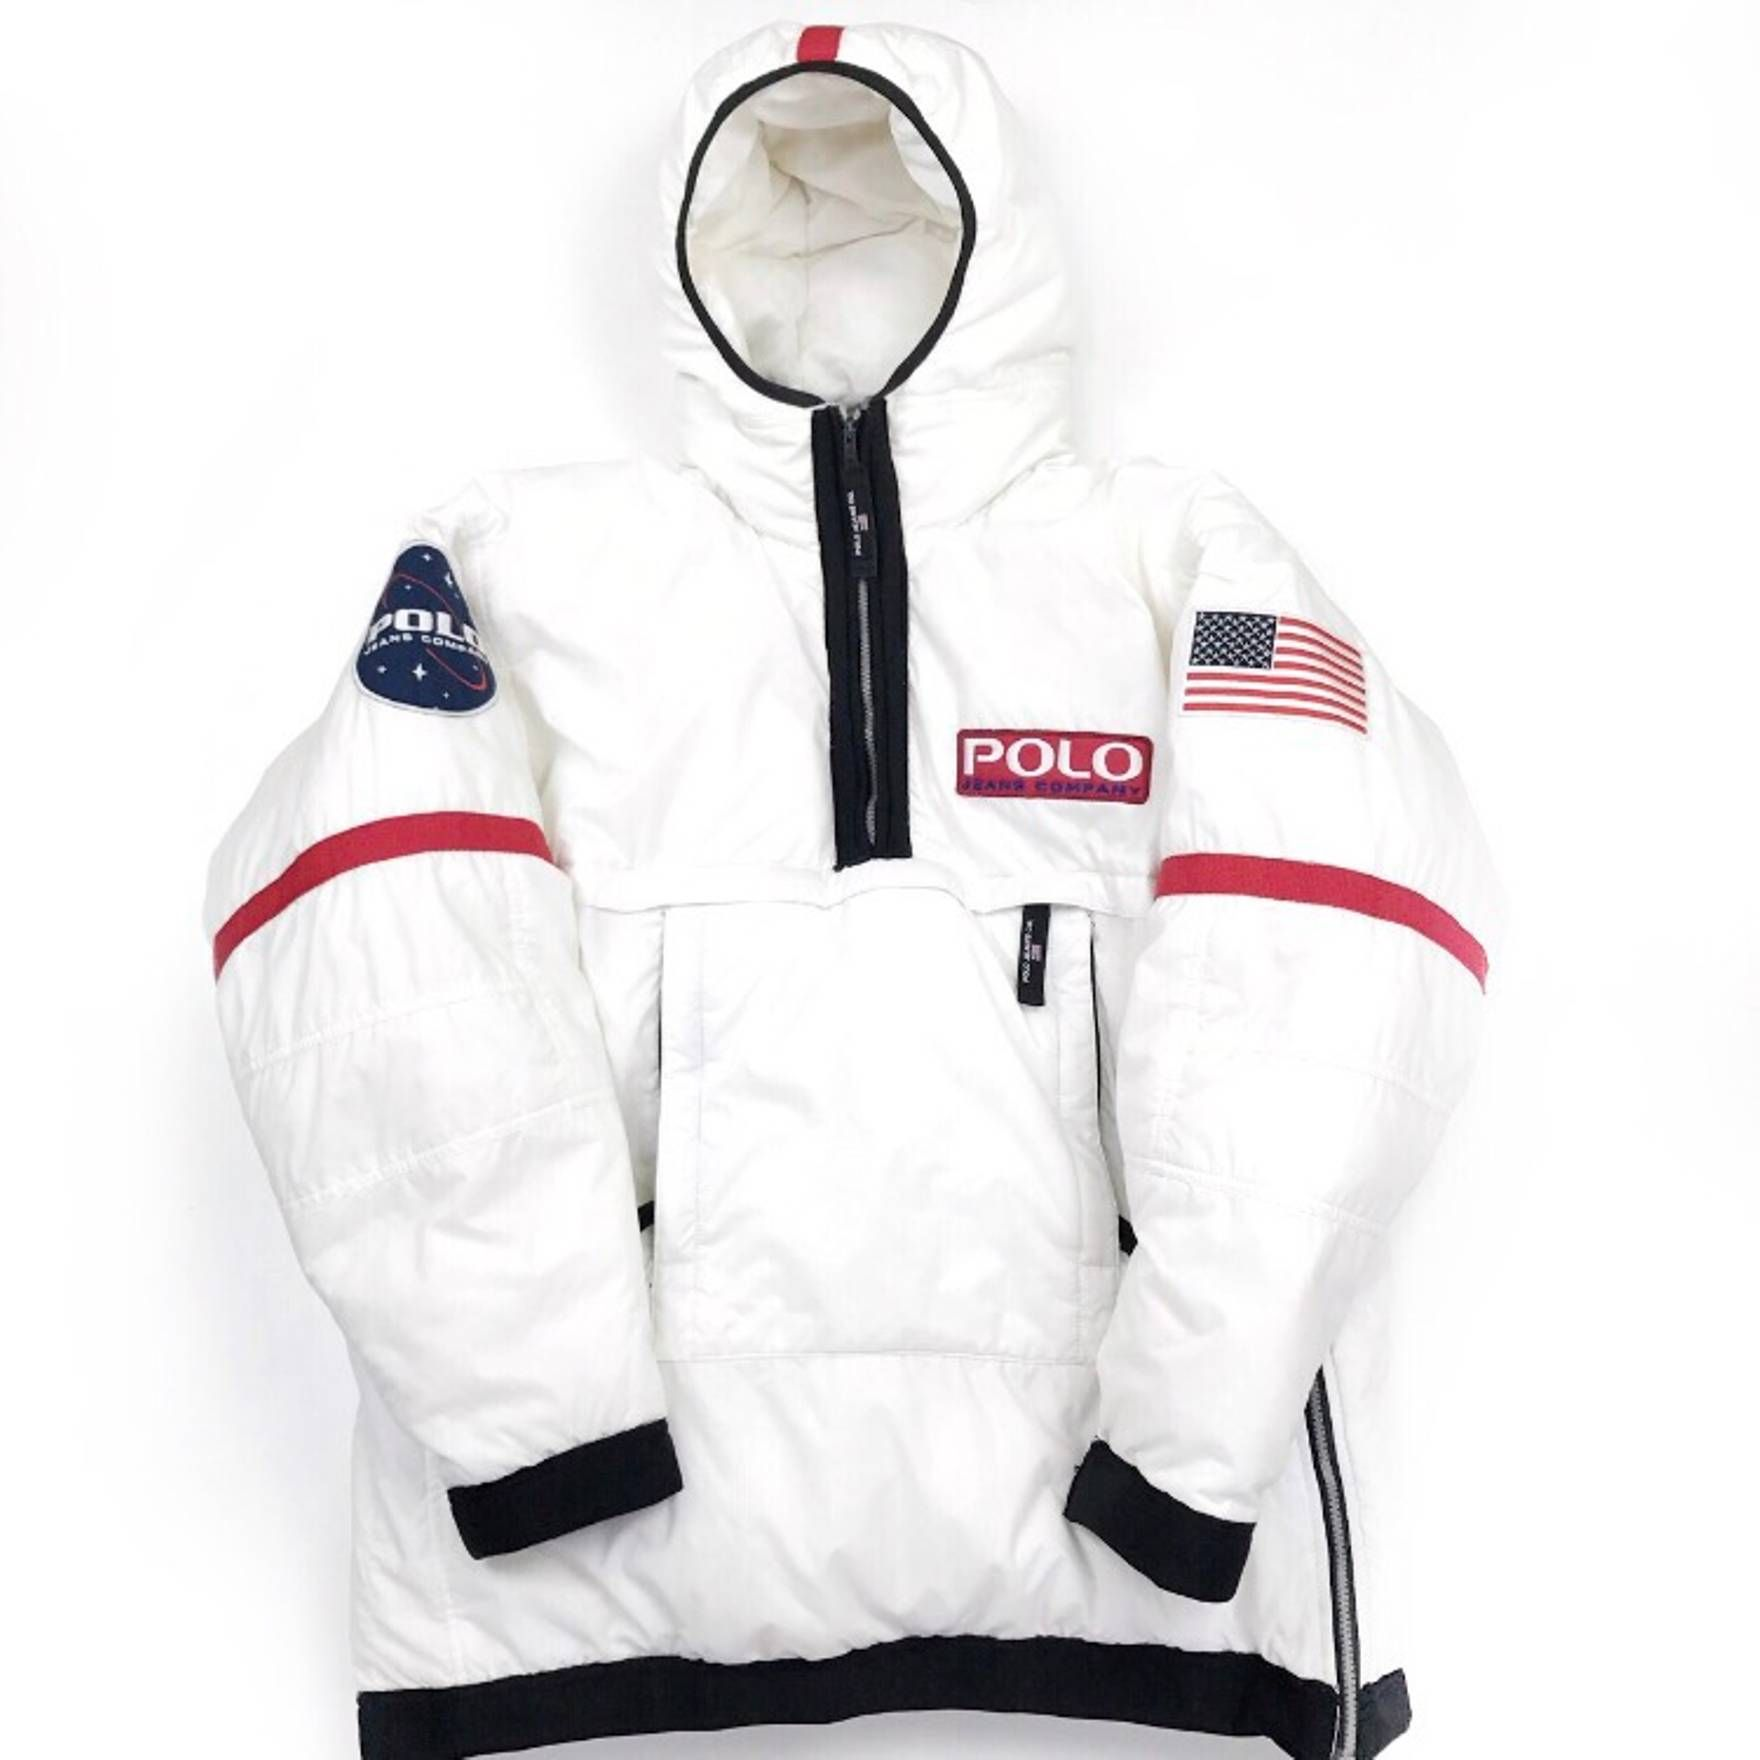 6c780d10cae1 Ralph Lauren Polo NASA spaceman Jacket Size US L   EU 52-54   3 ...